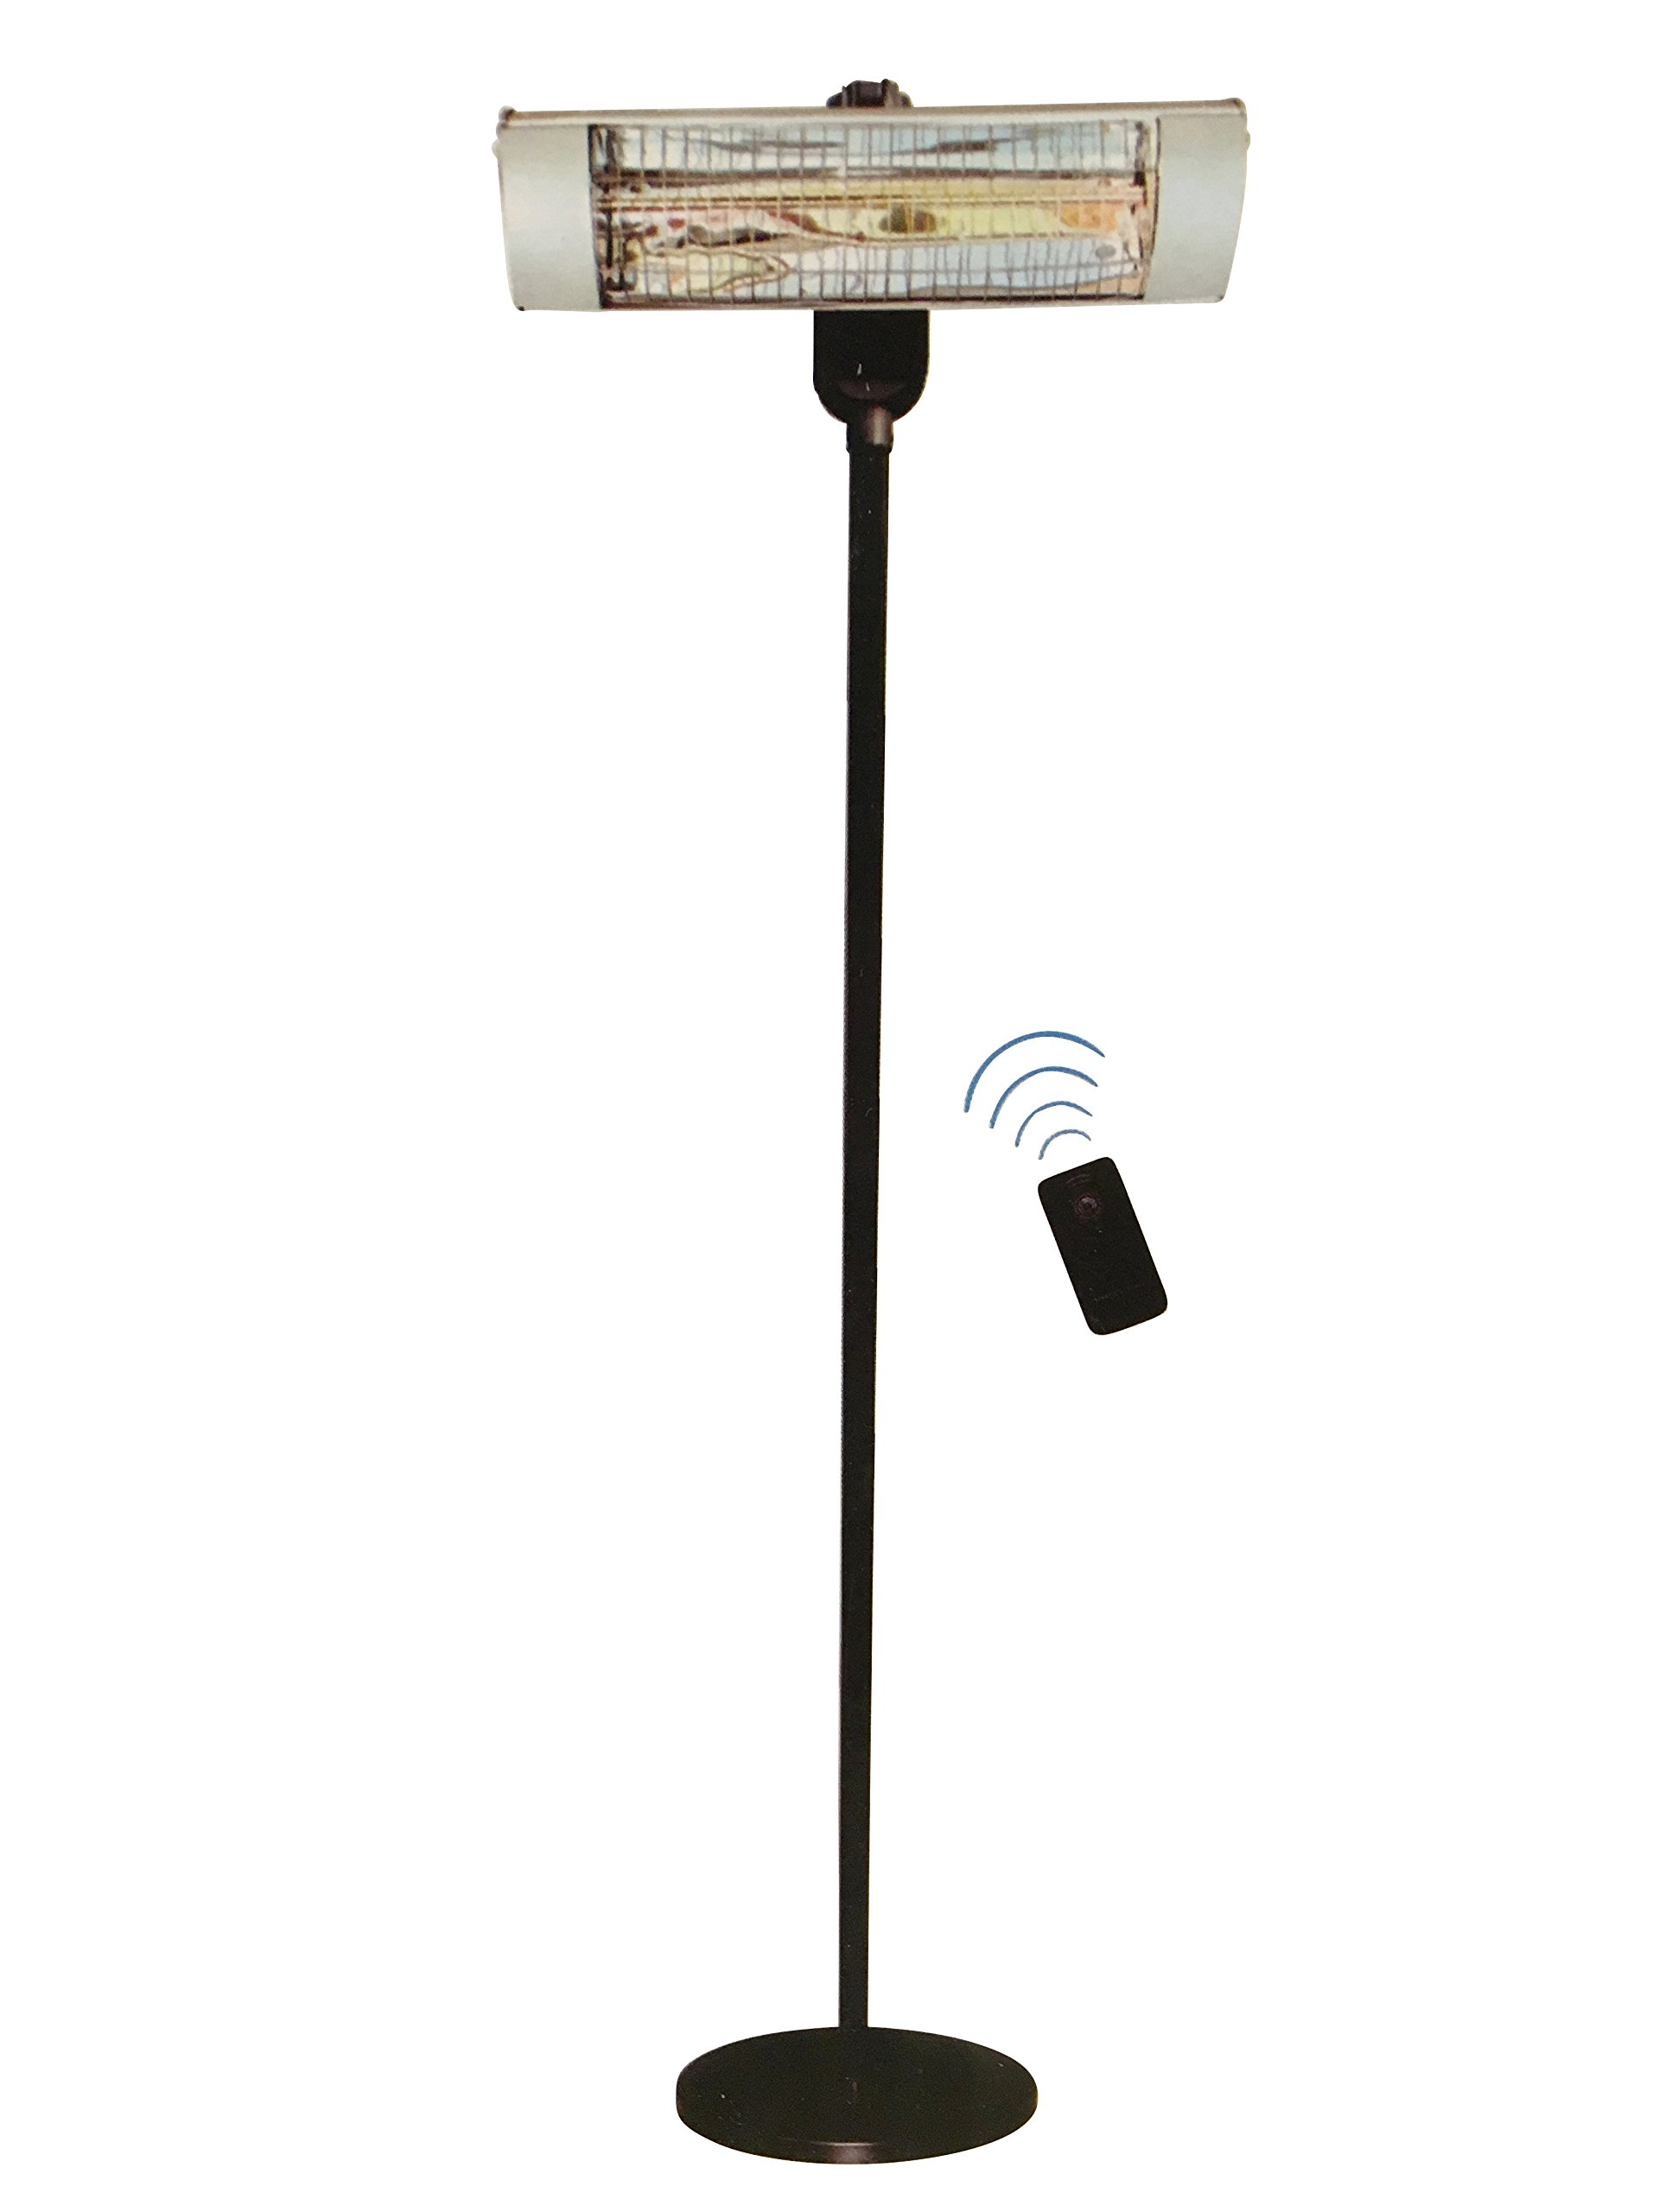 Steel Workers Extra Tall Freestanding Electric Indoor/Outdoor Infrared Patio Heater with Remote 1500 Watts